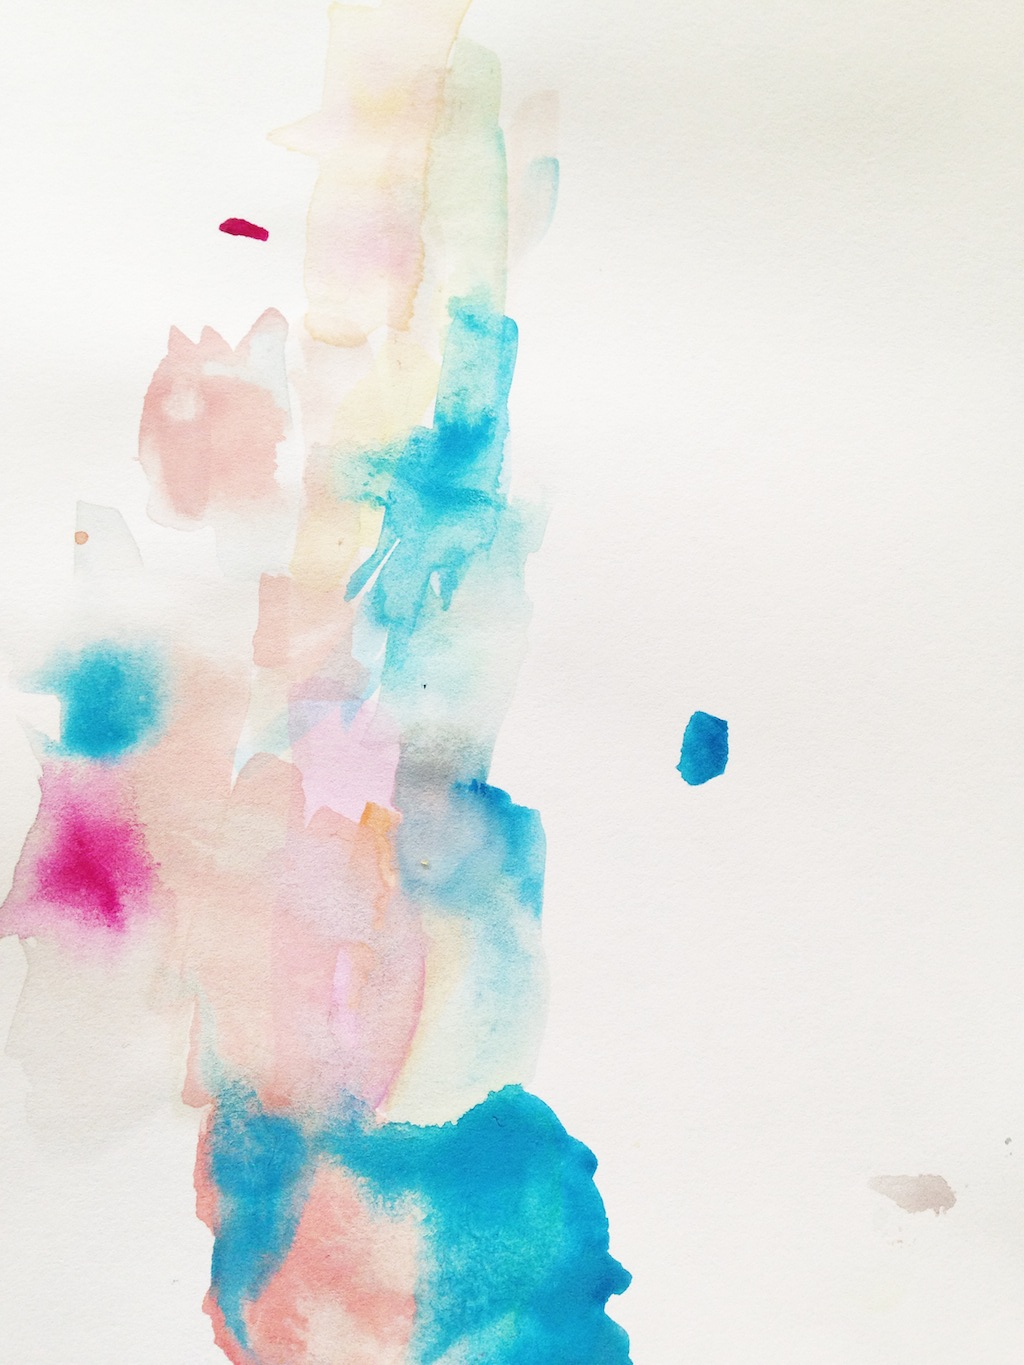 Watercolor painting by Nathaniel Biehle, Age 3